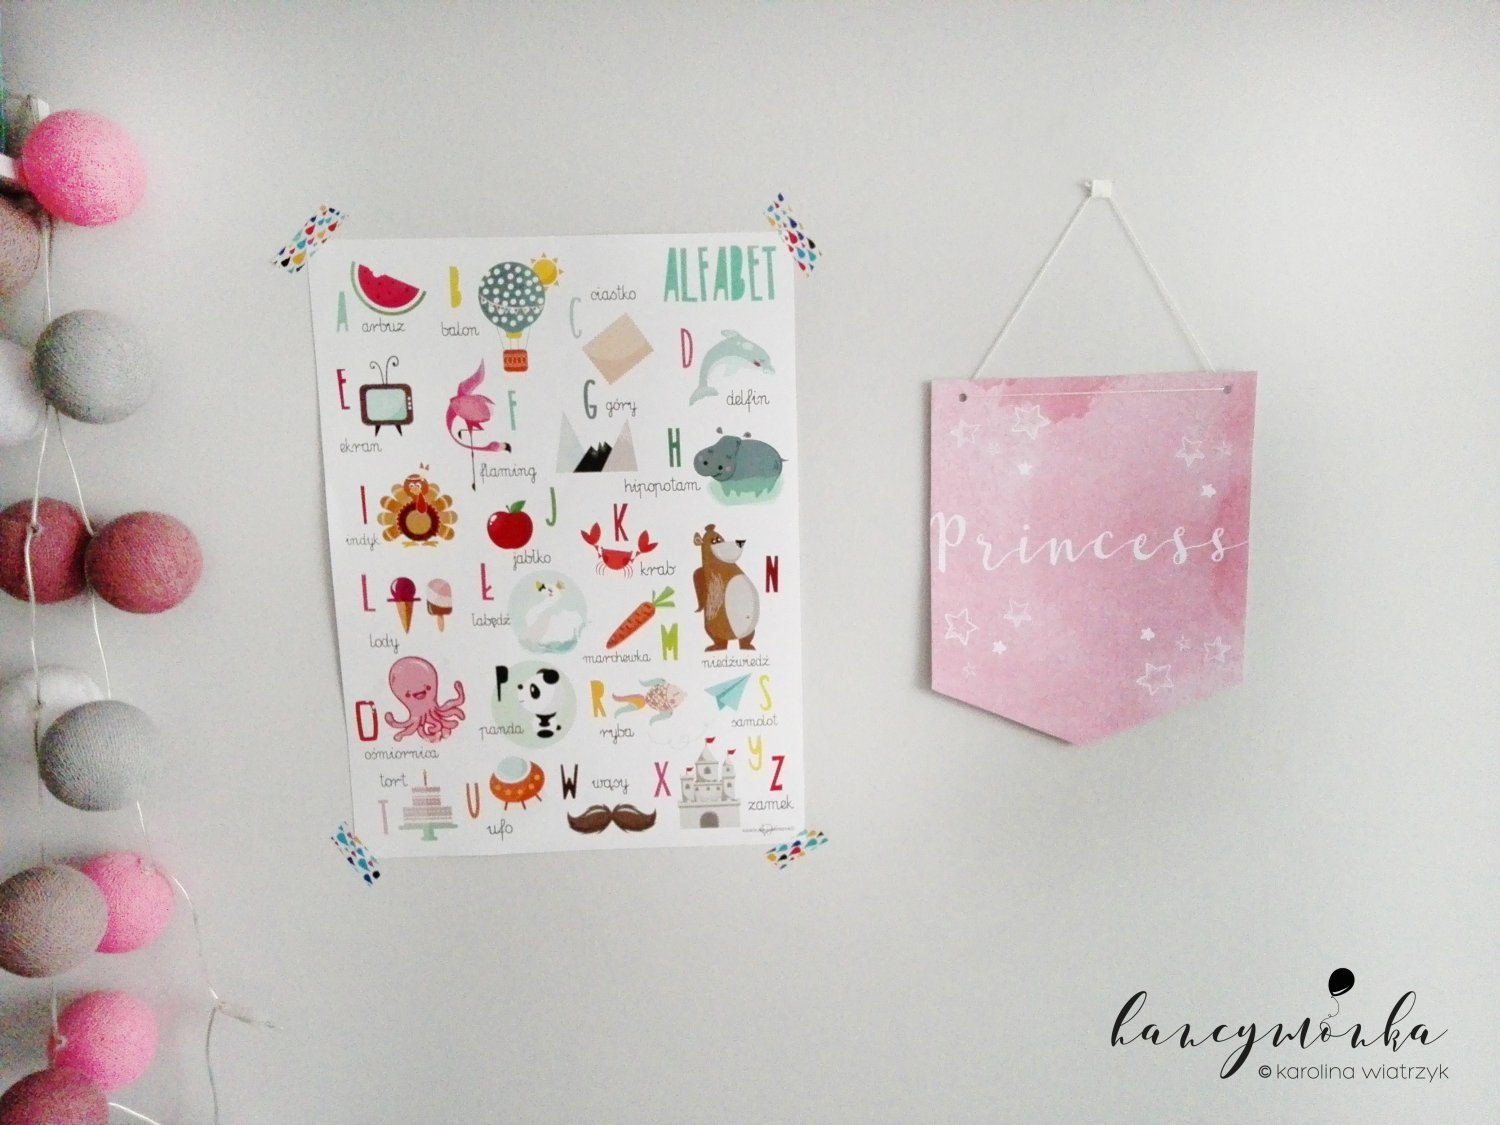 diy, proporczyk, paper flag, baby room, kids room, decor, decoration, pokój dziecięcy, dla dzieci, for kids, design for kids, zrób to sam, zrób to sama mamo, grafiki, plakaty, dream big, cloud, young and wild, princess, do druku, printable, freebie, hancymonka